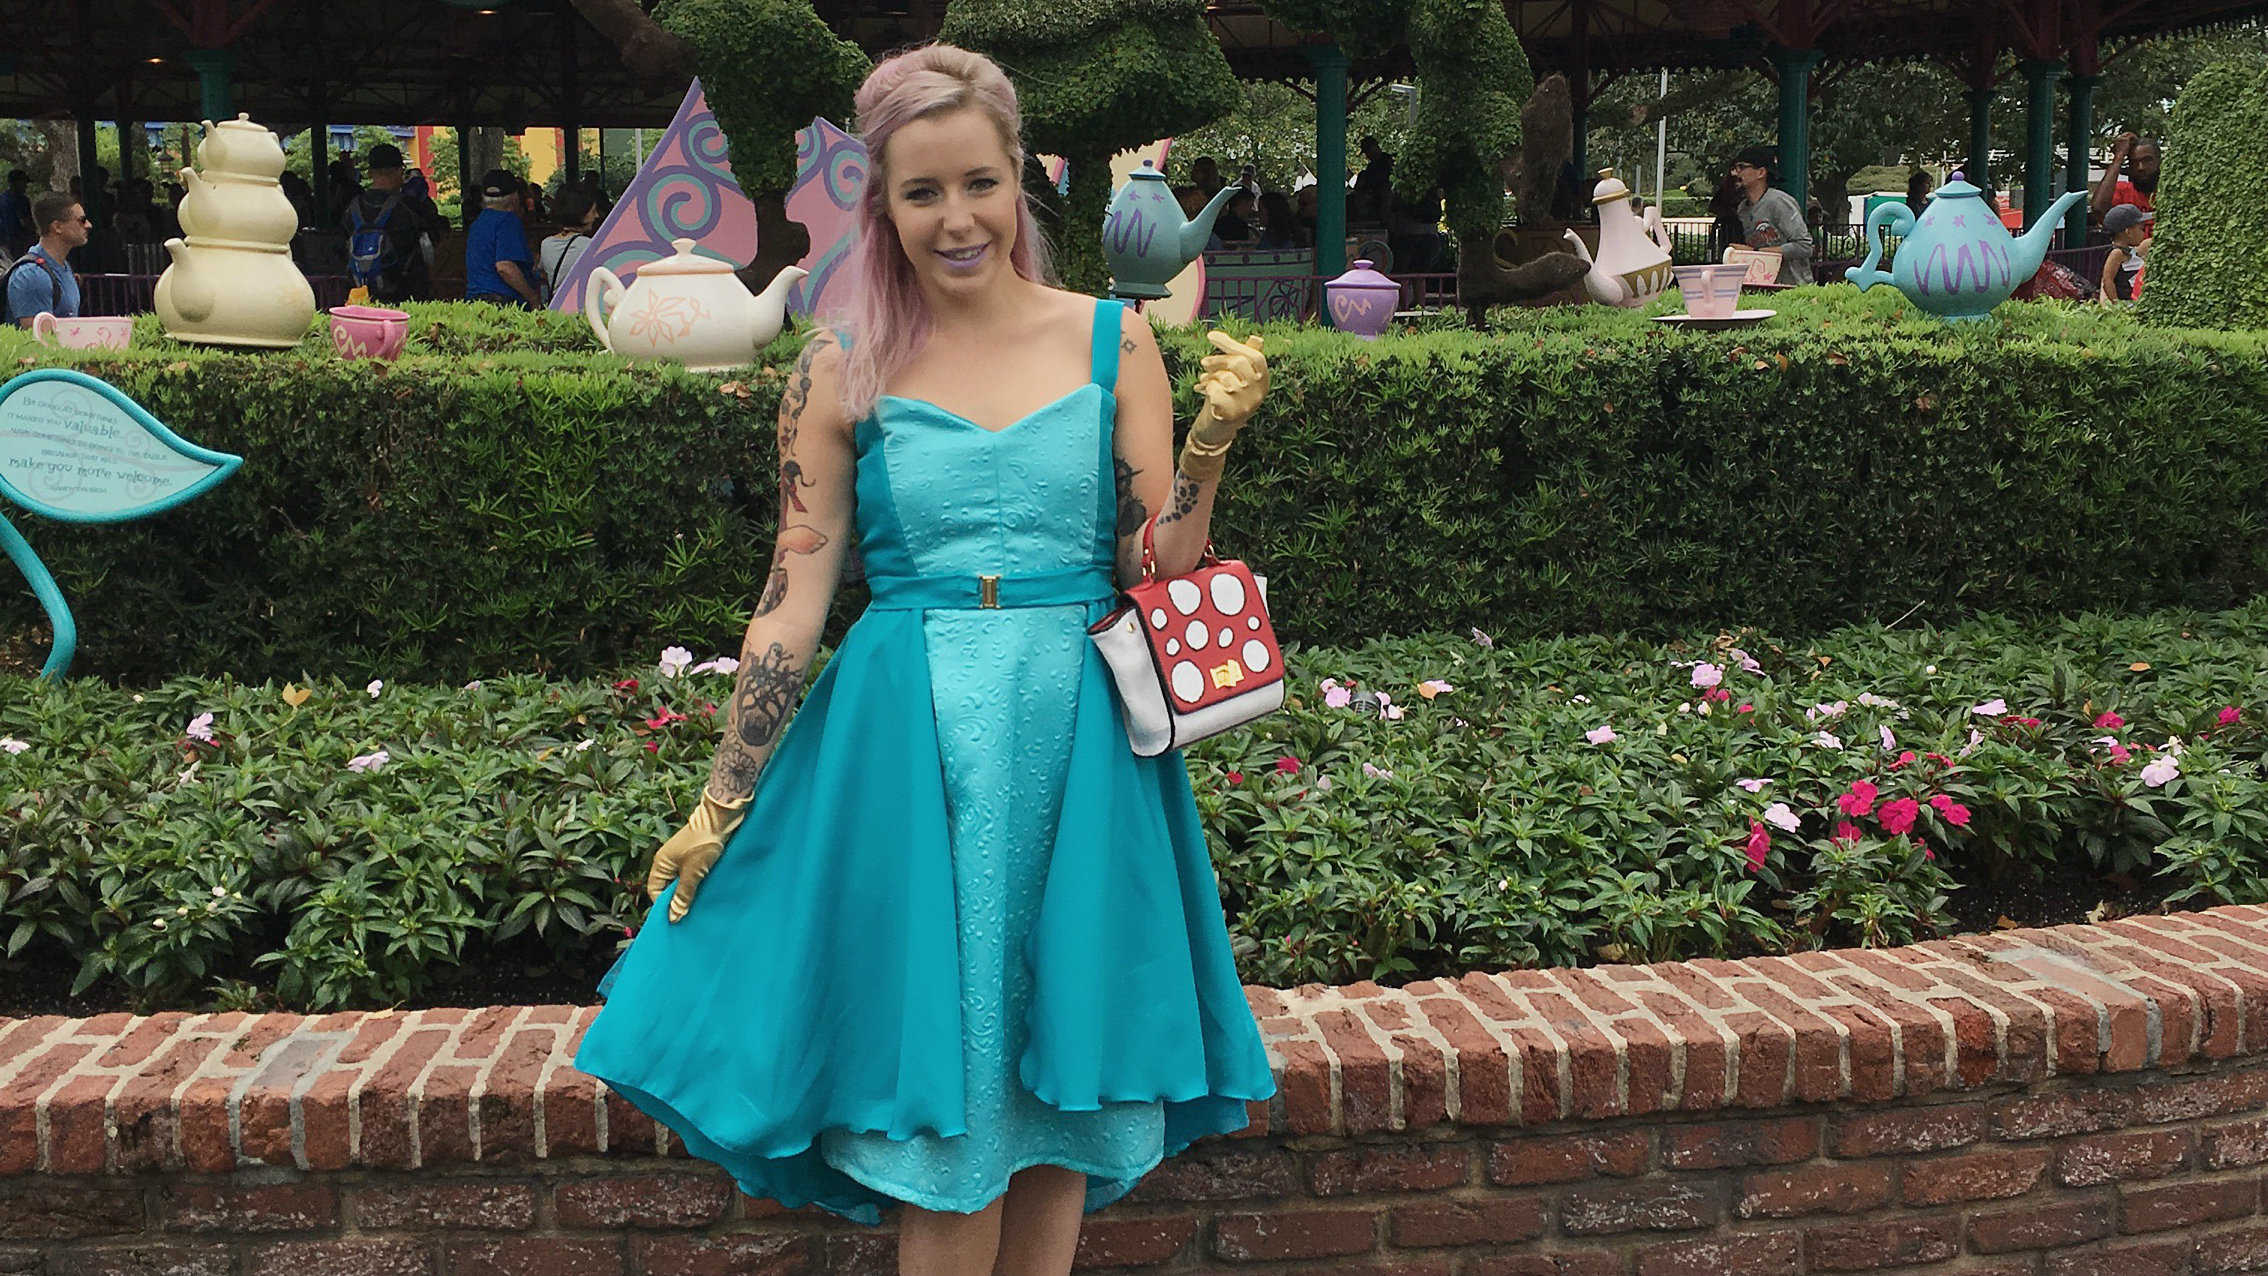 Leslie DisneyBounding as the Caterpillar from Alice in Wonderland on Dapper Day